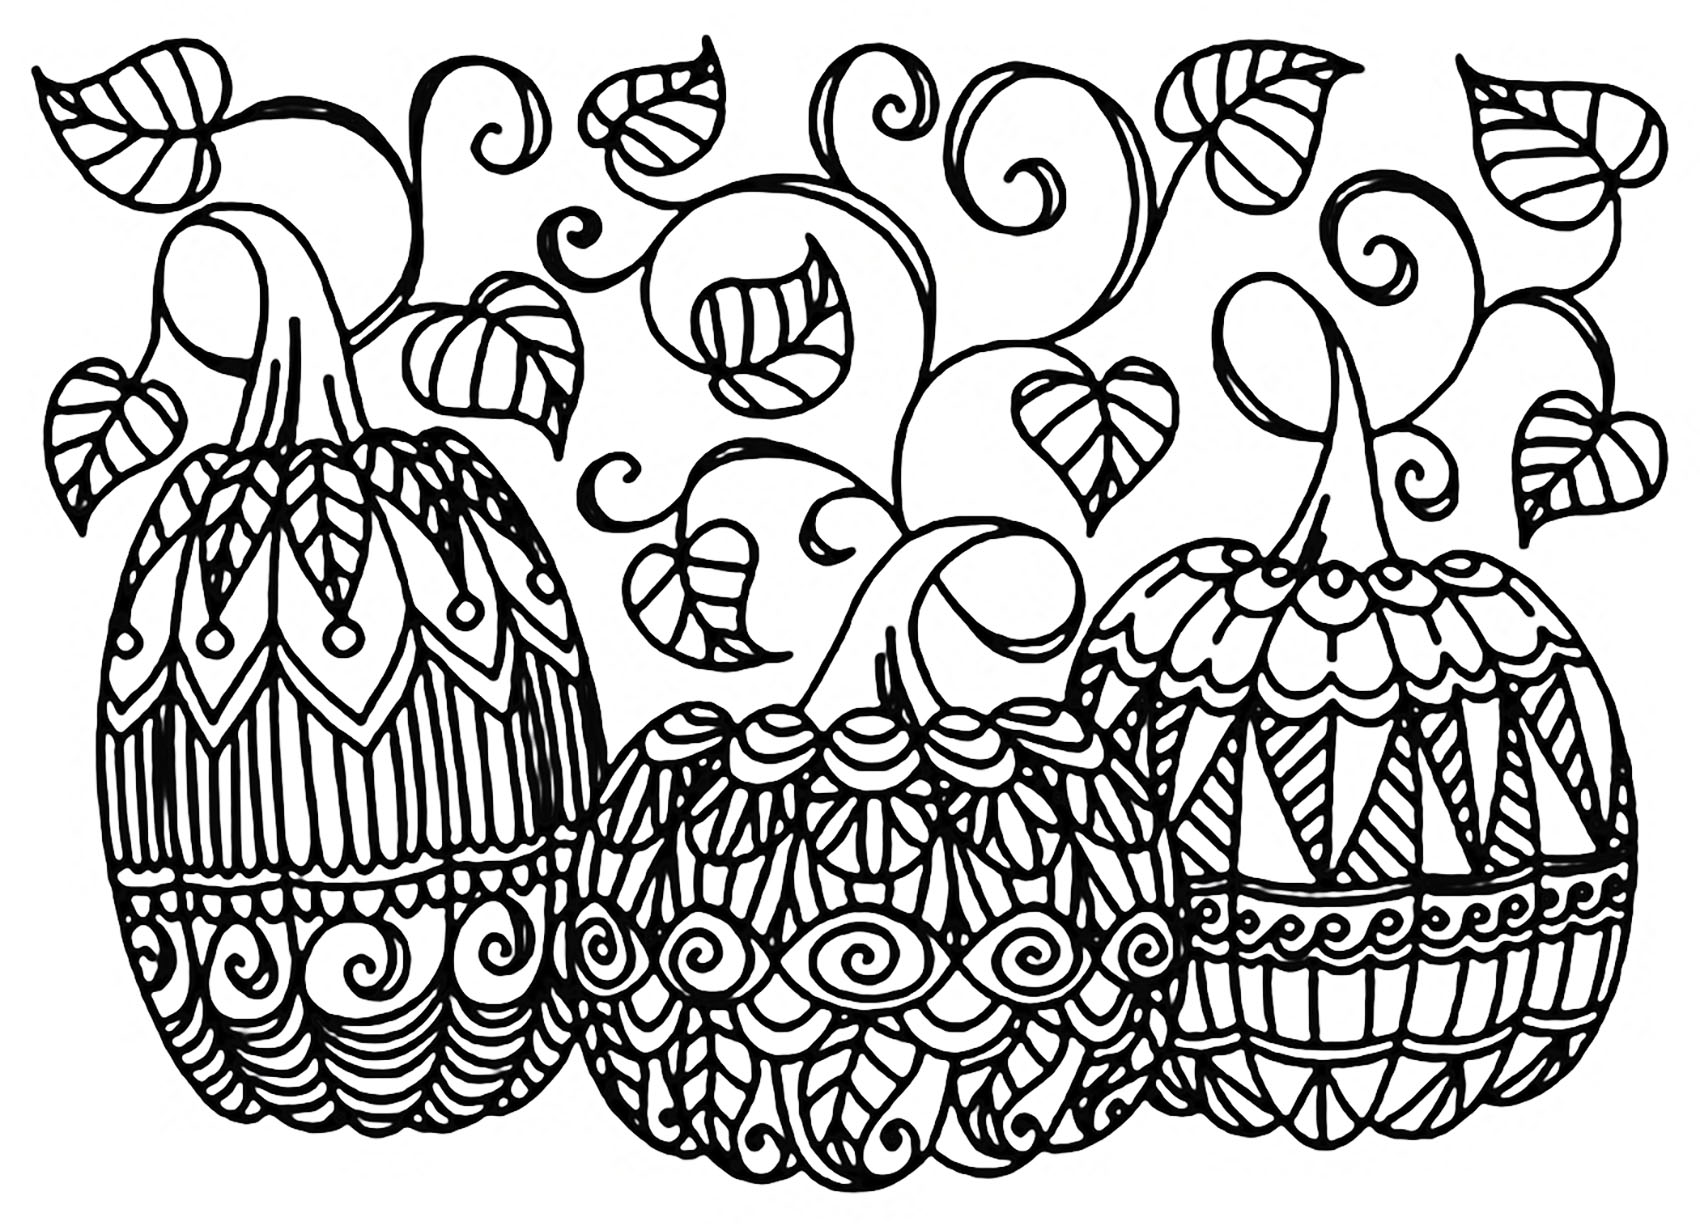 442 Best Halloween coloring pages images in 2020   Halloween ...   1230x1700